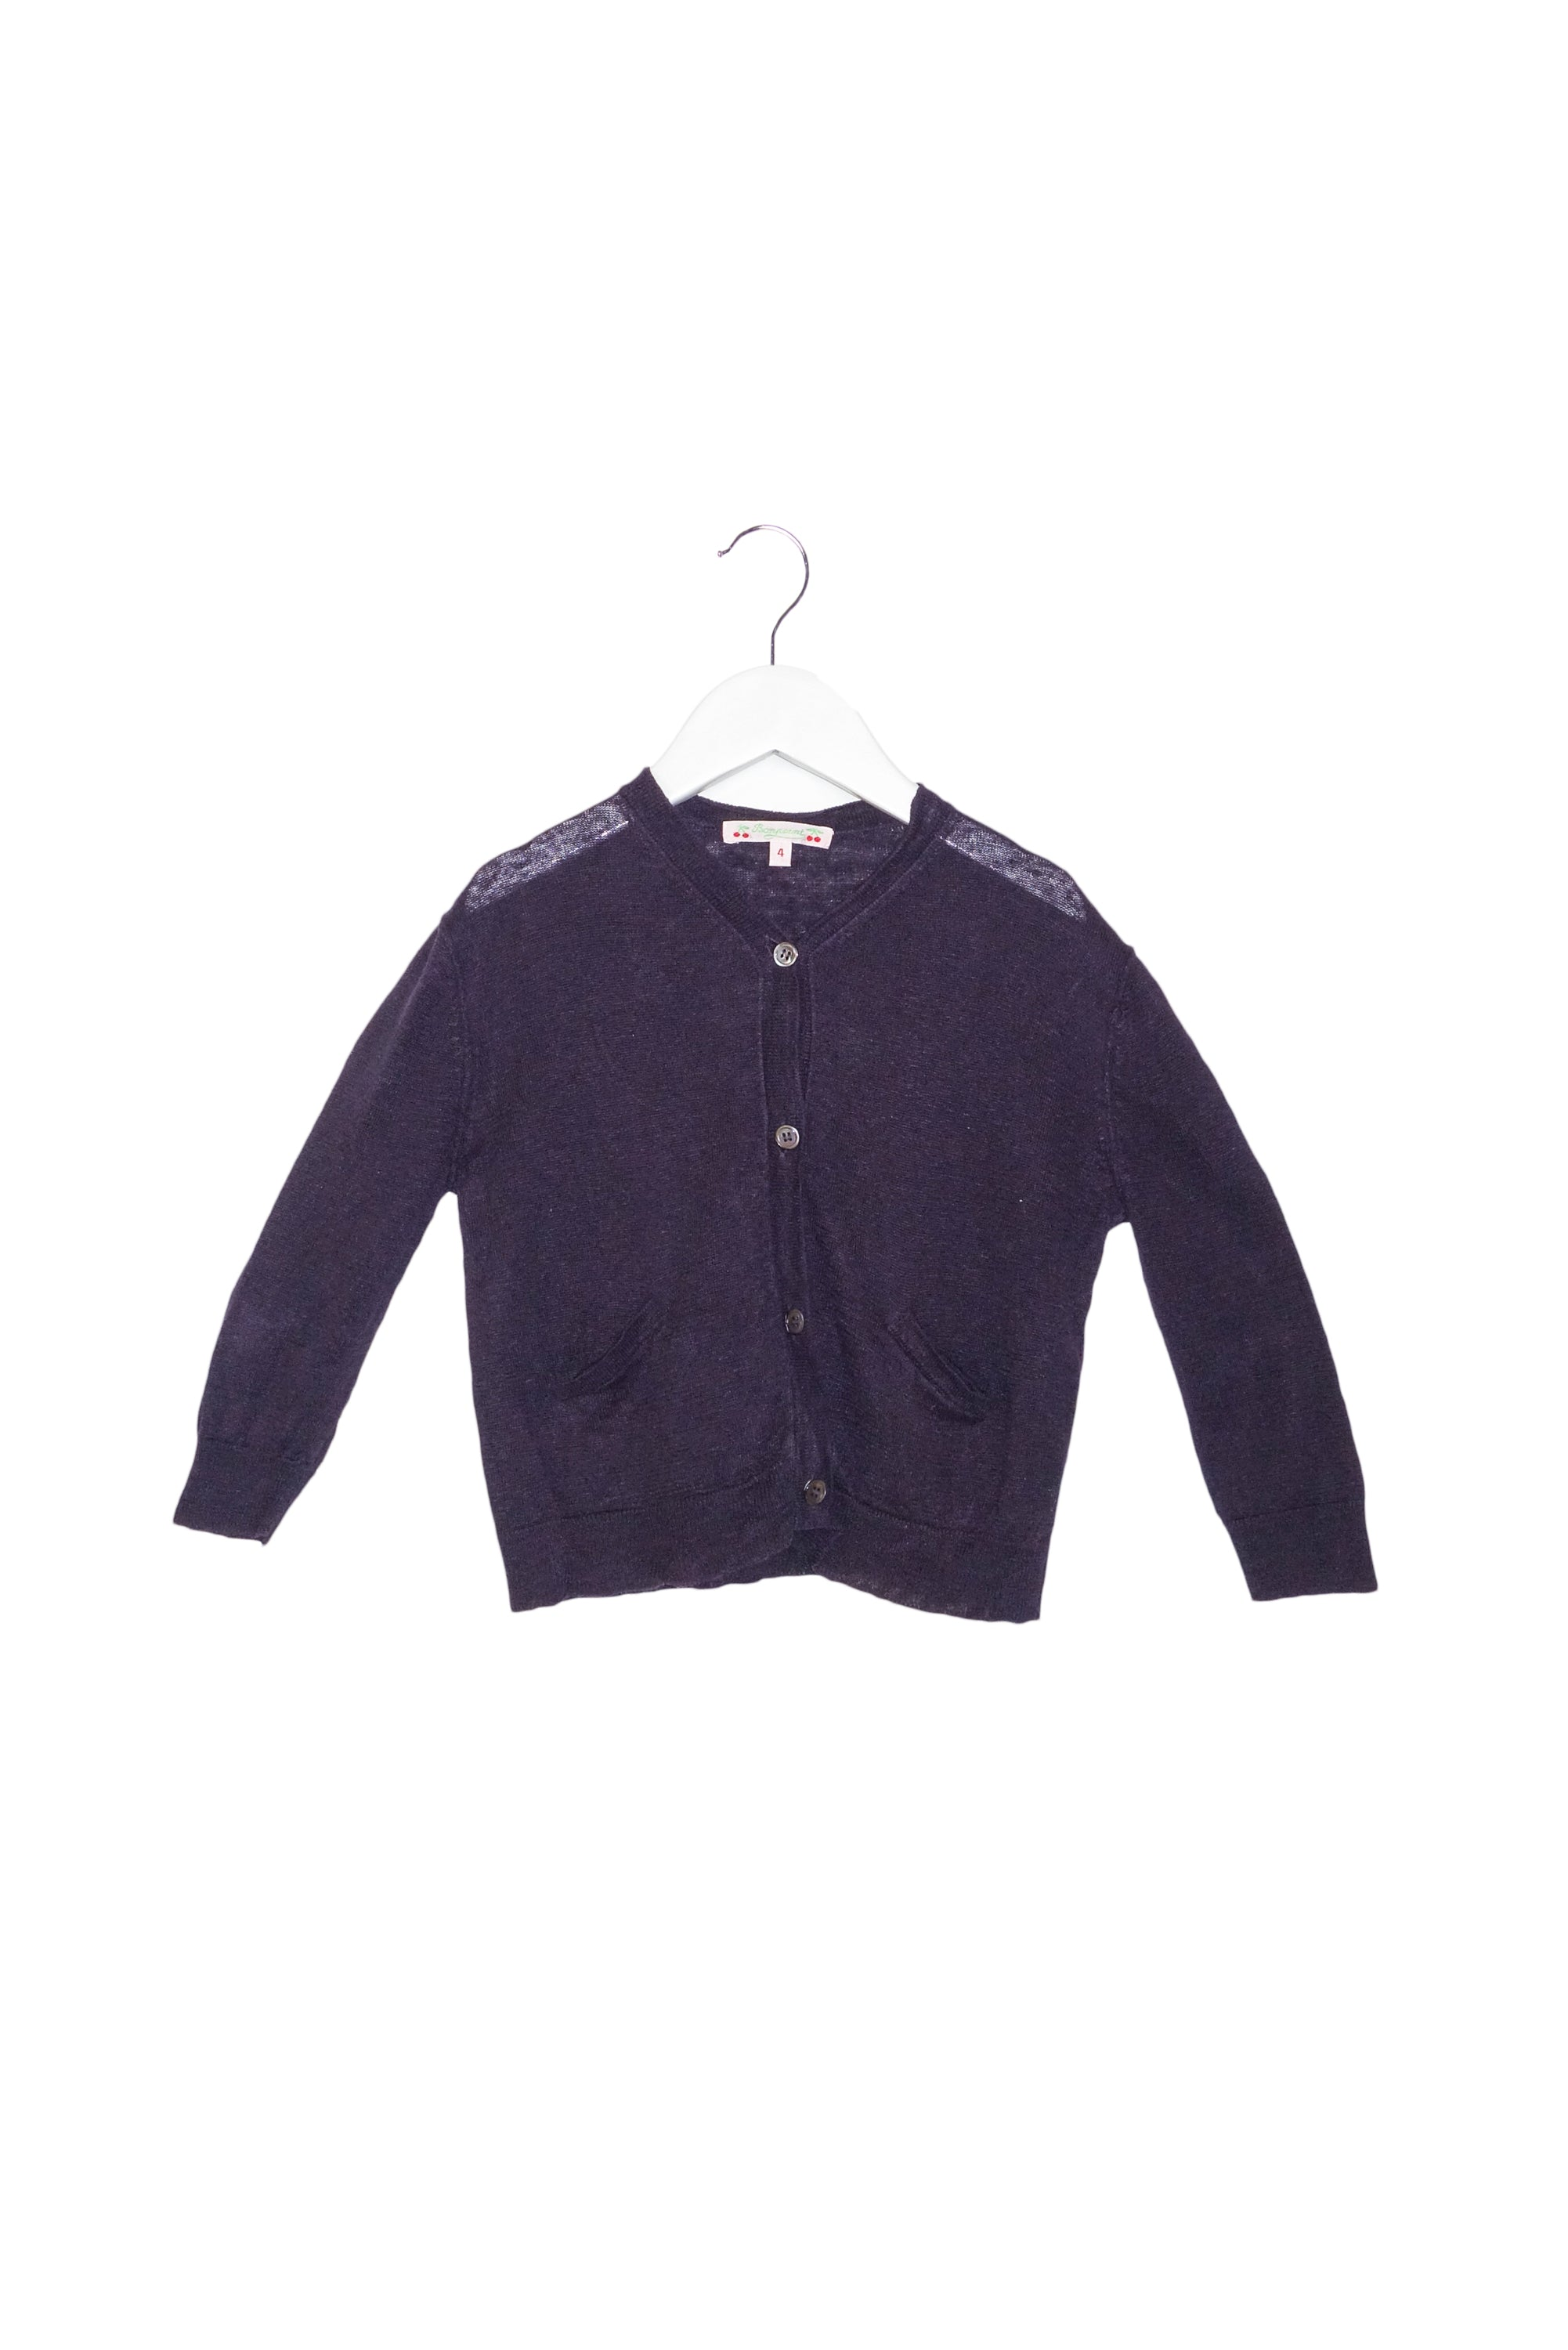 10012943 Bonpoint Kids~Cardigan 4T at Retykle